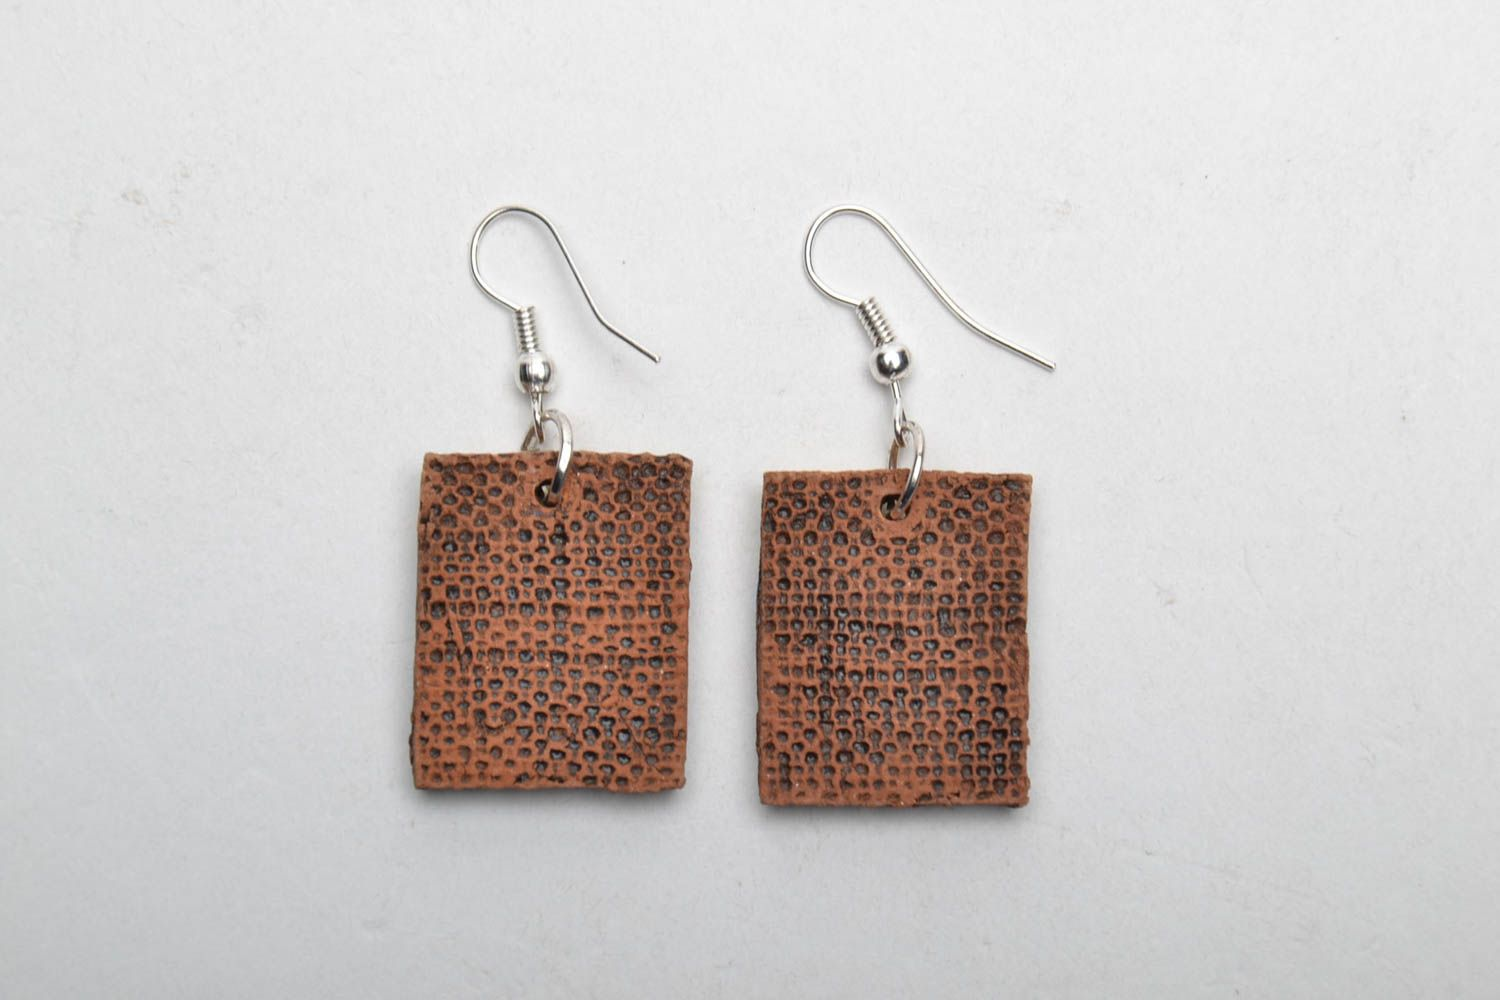 Square clay earrings photo 5